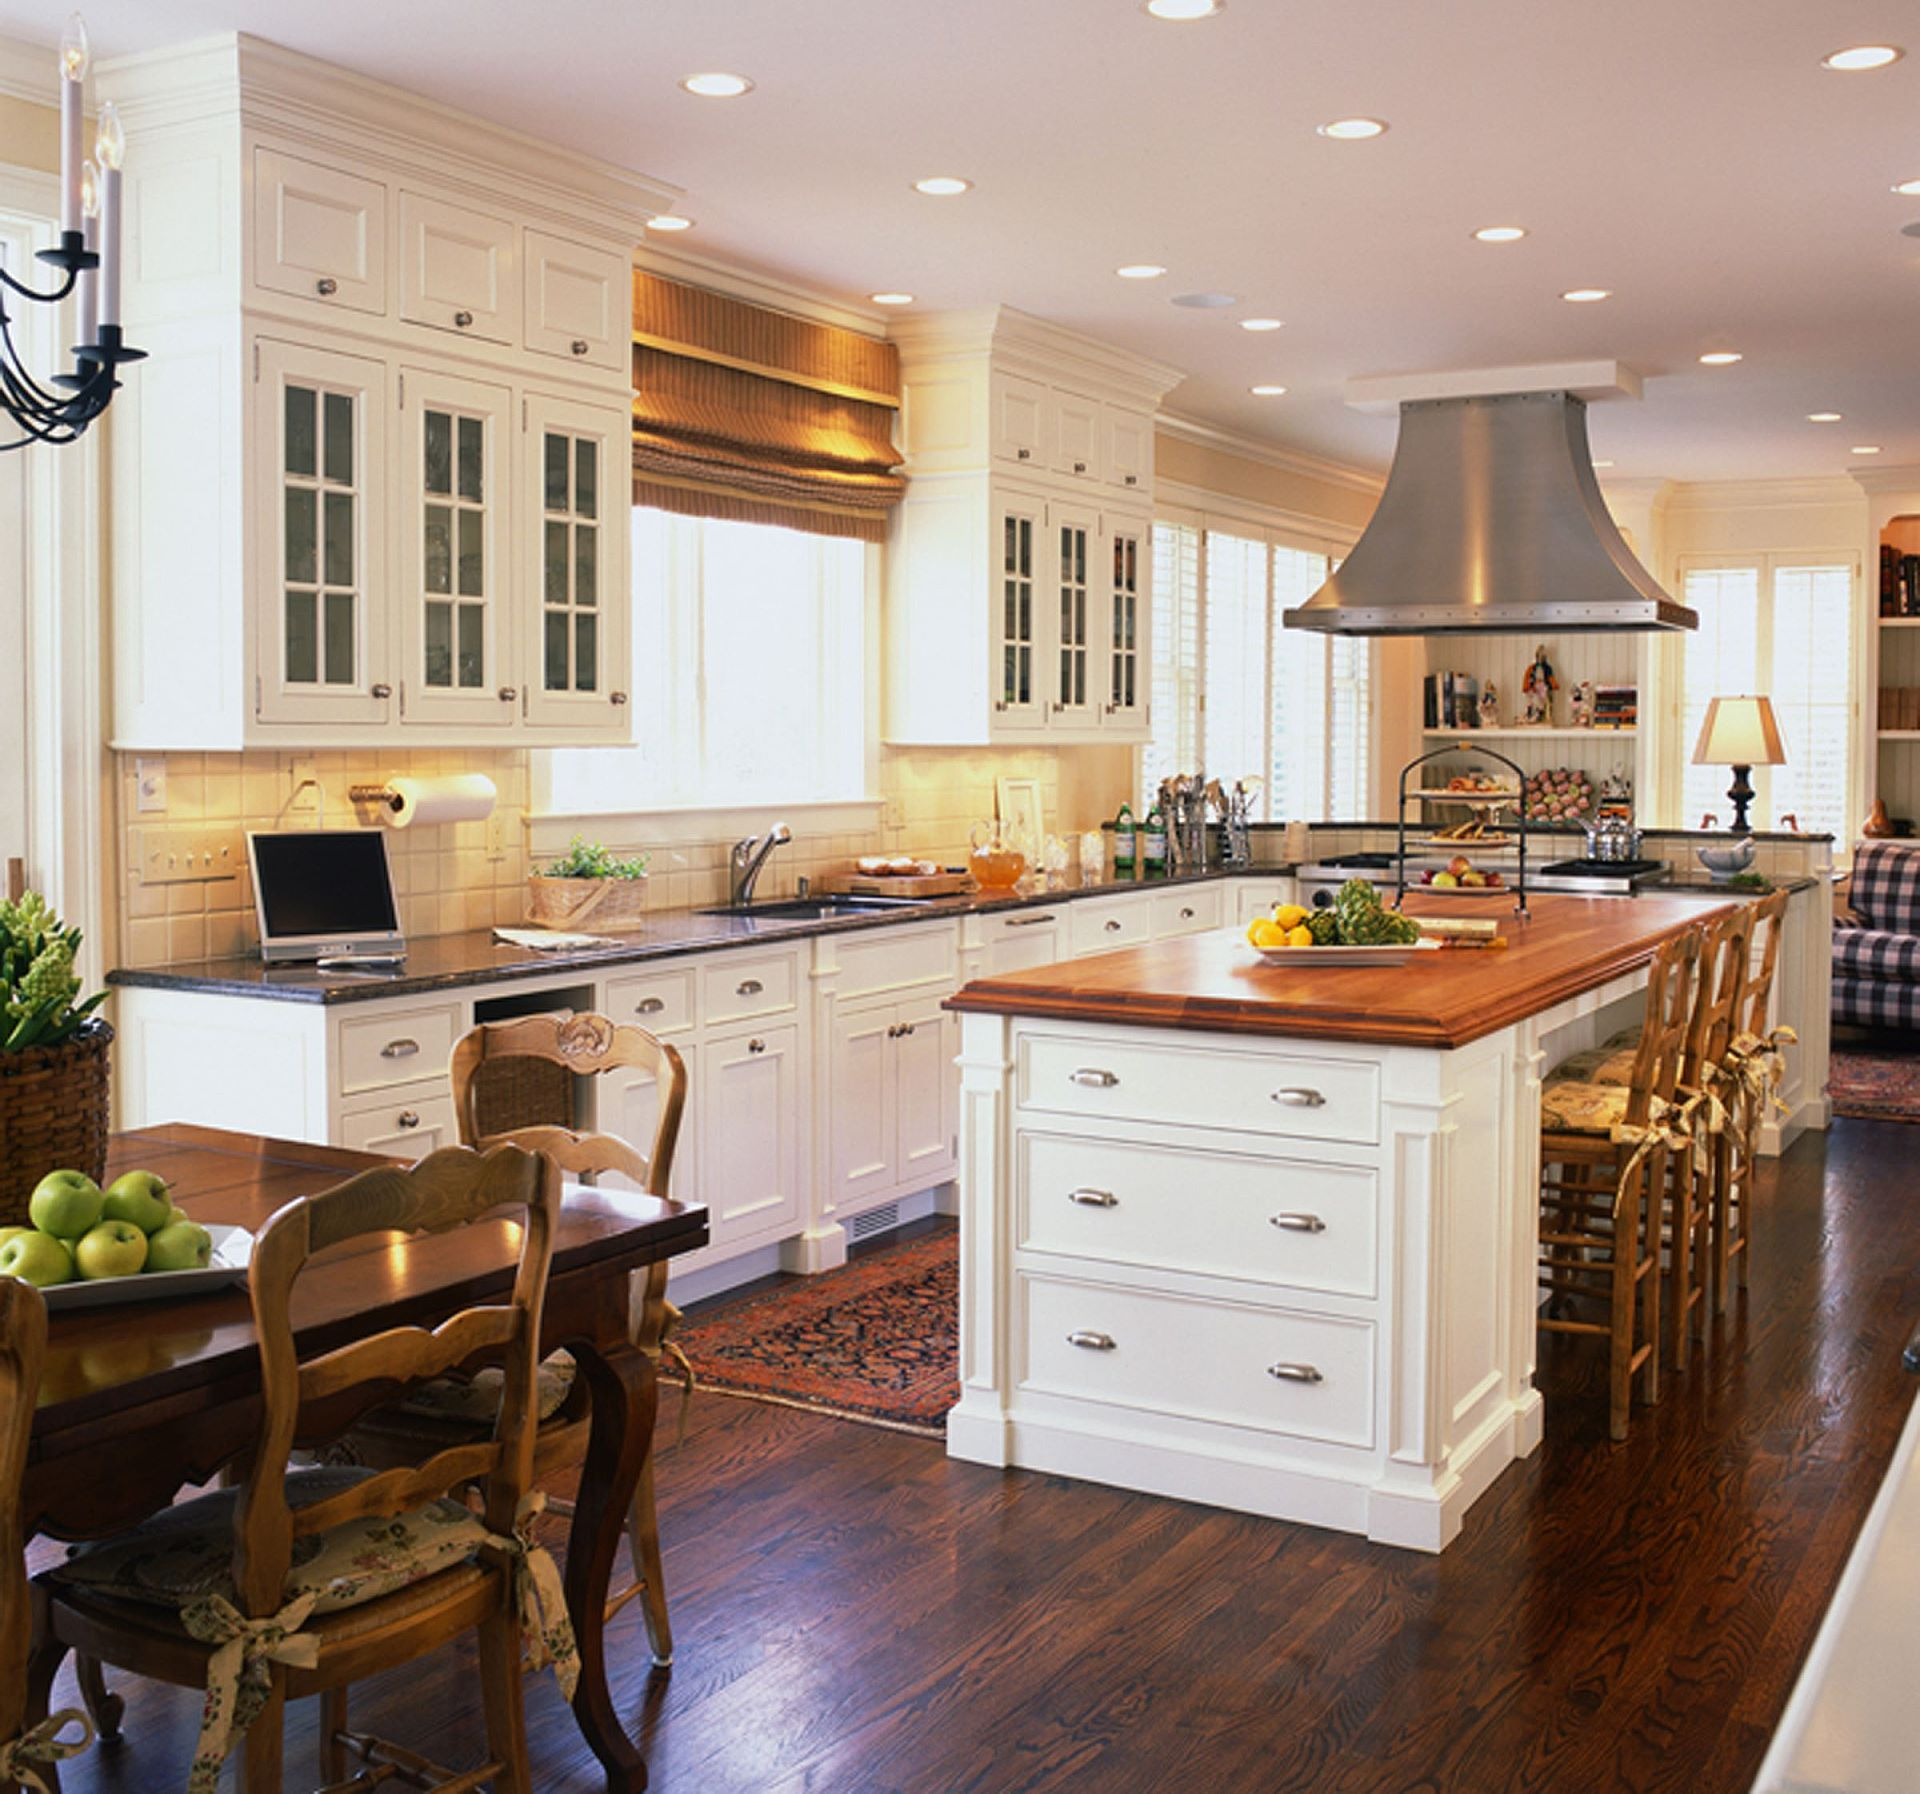 Agreeable Kitchen Cabinets Trends Decoration Ideas Kitchen Island With Wood Countertop Contrasts Beautifully Craft Maid